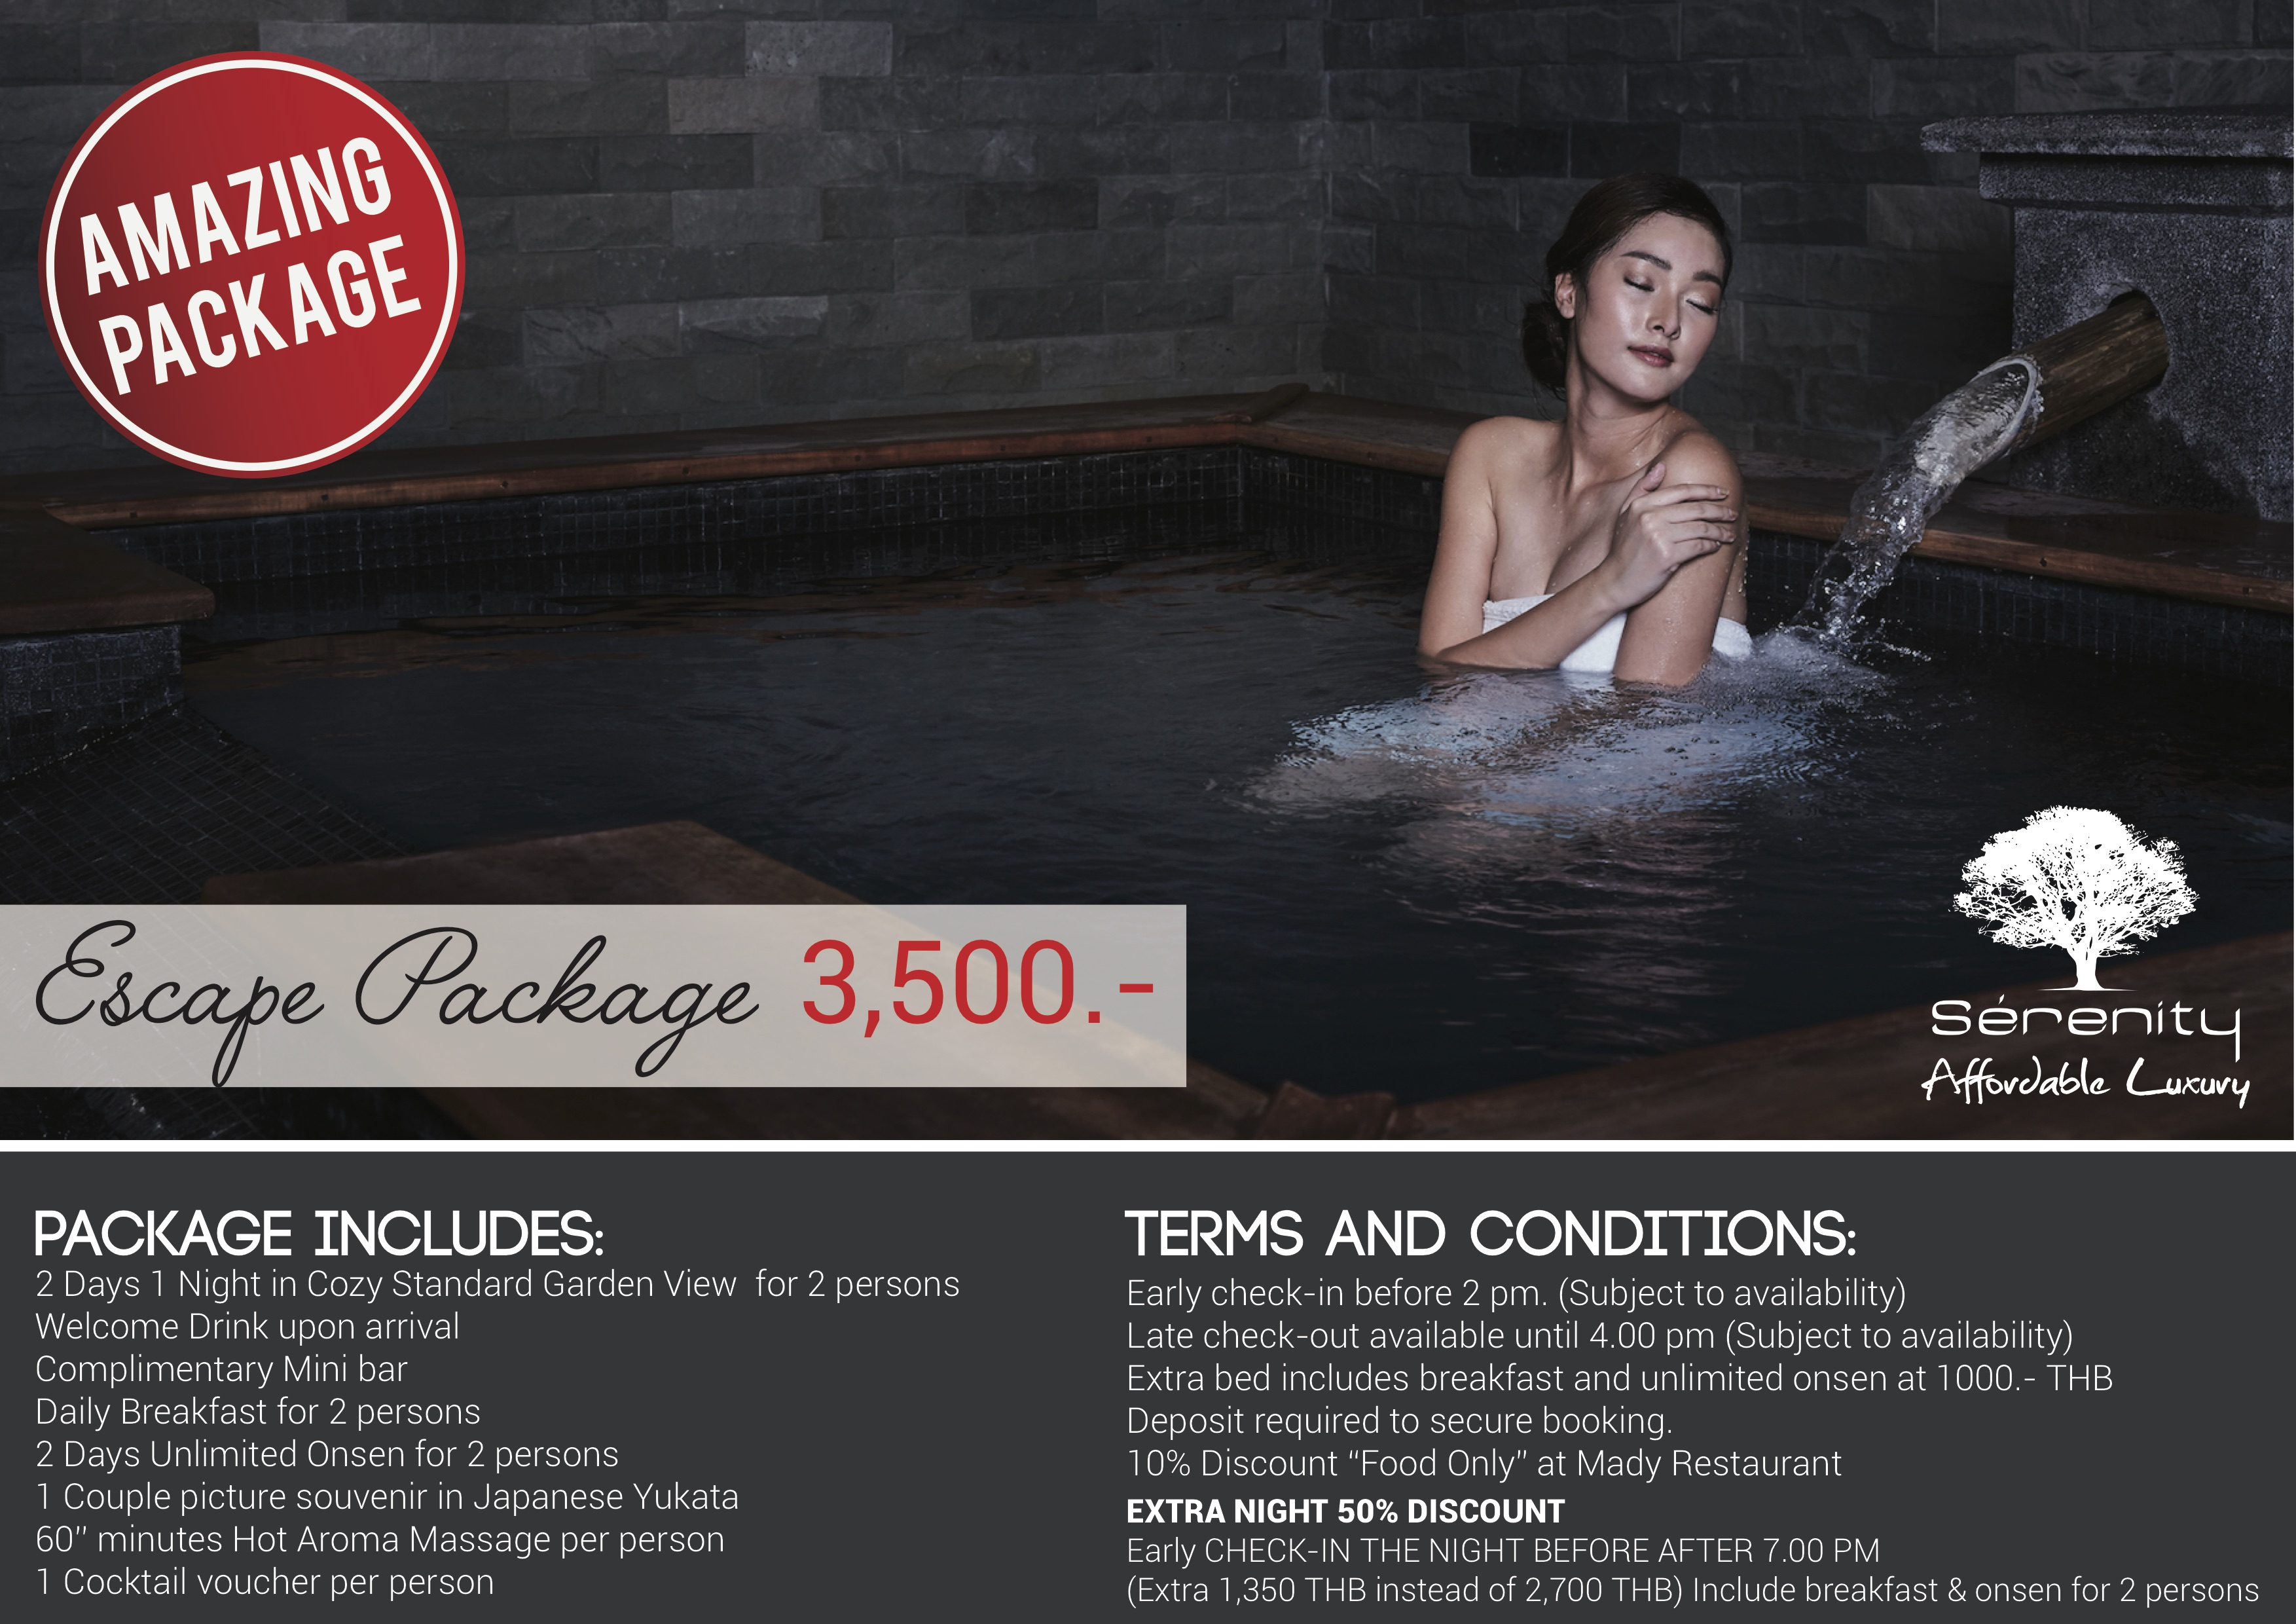 Serenity escape package